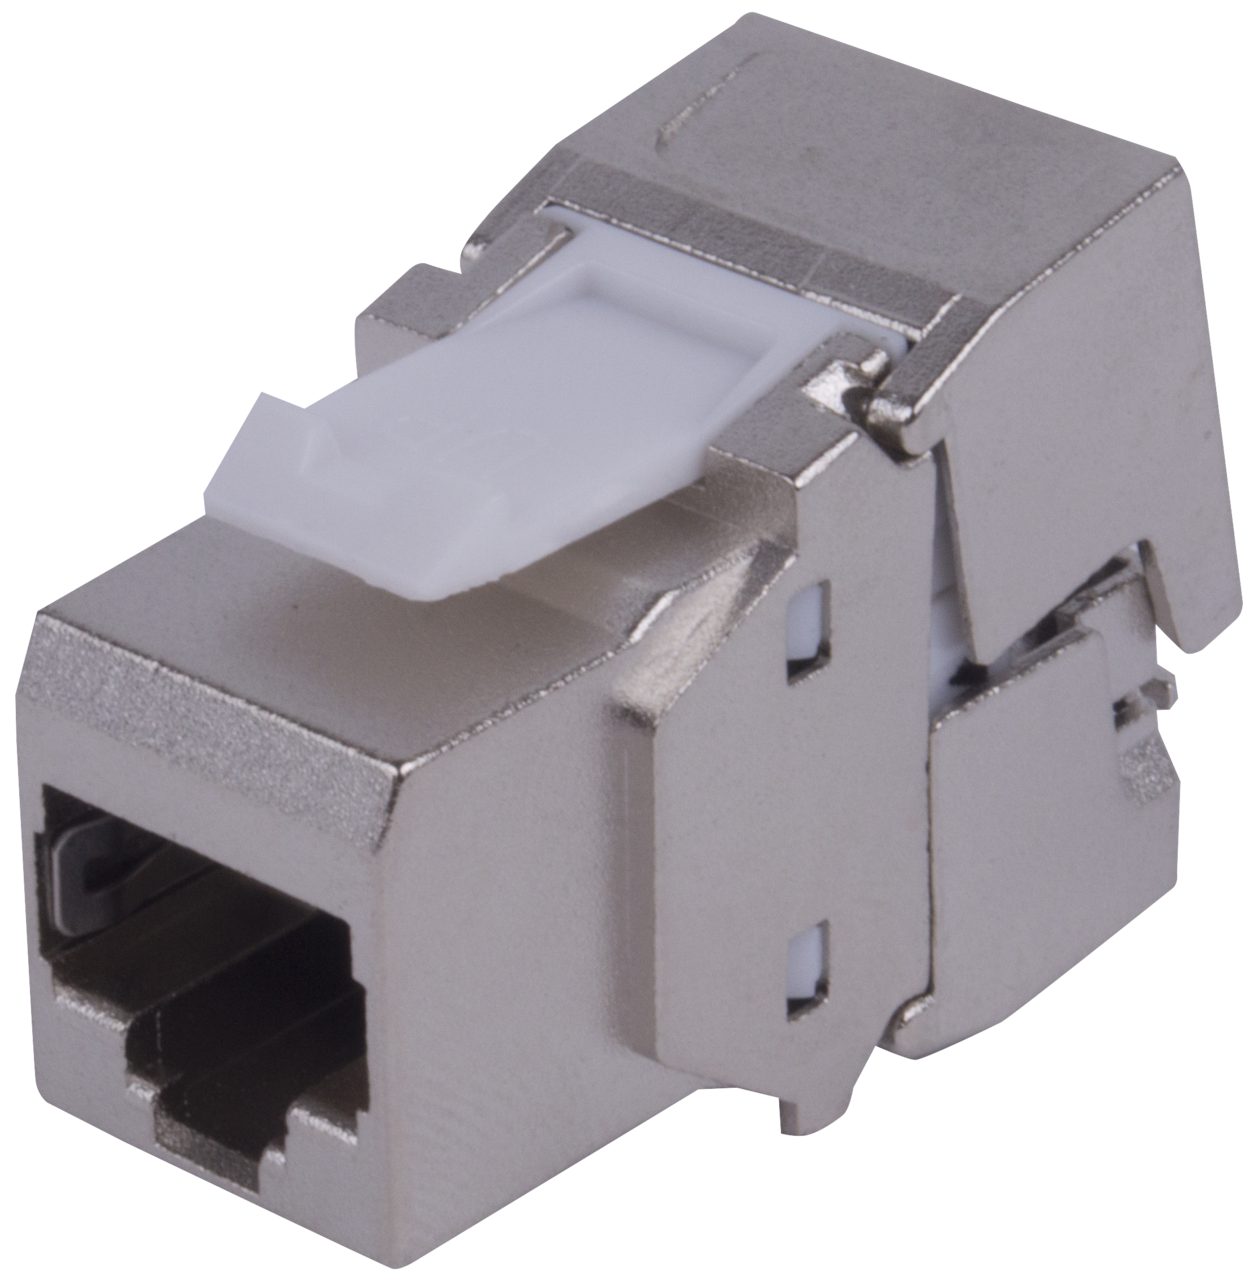 1a68tpza0 Liberty Category 6a Stp 180 Degree Keystone Insert Rj11 To Rj45 Wiring Diagram Manual User Pdf Autos Post